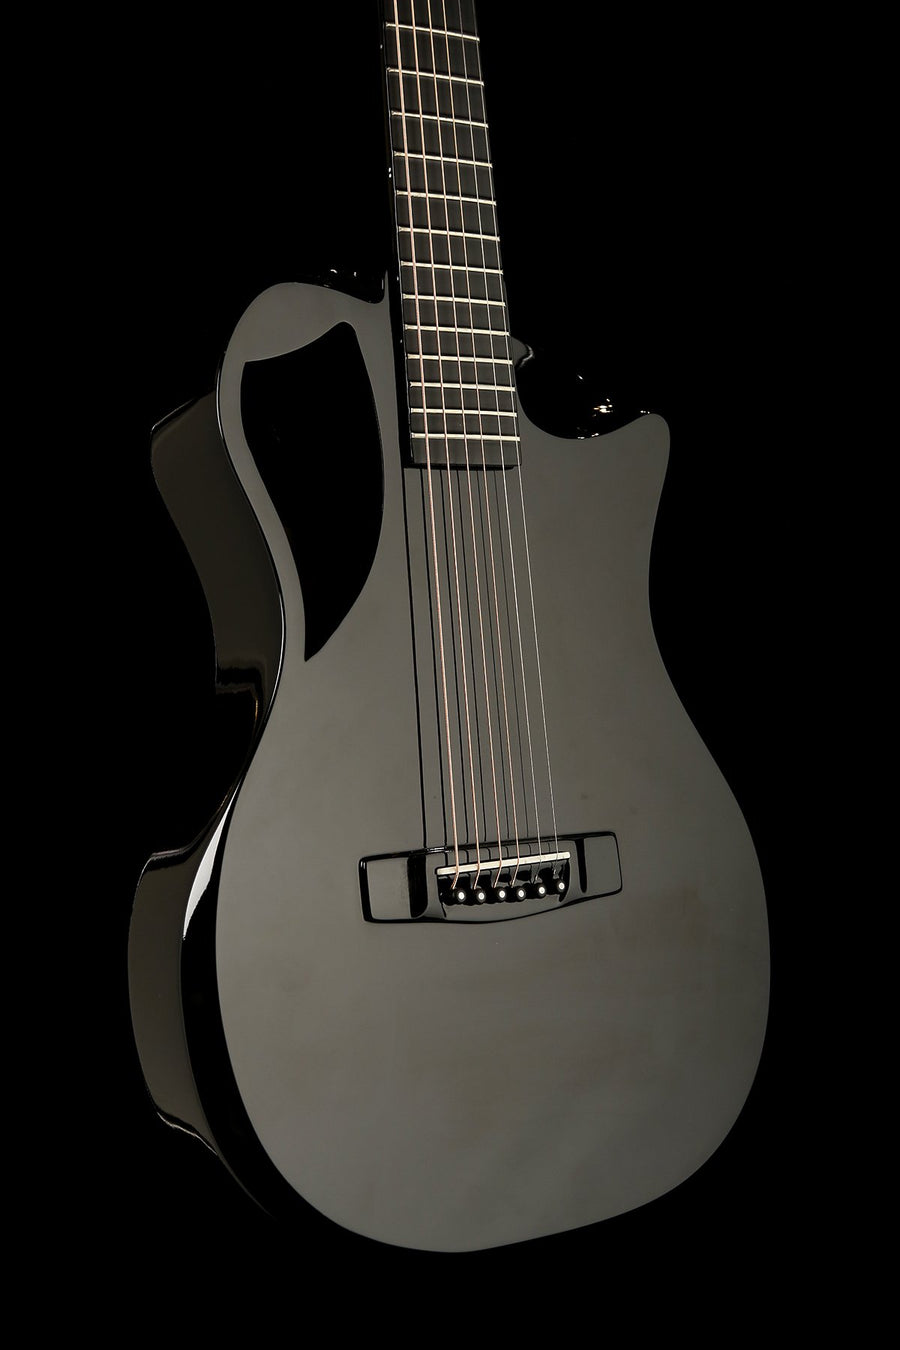 Journey Instruments OF660 Gloss Black Collapsible Acoustic Electric Guitar